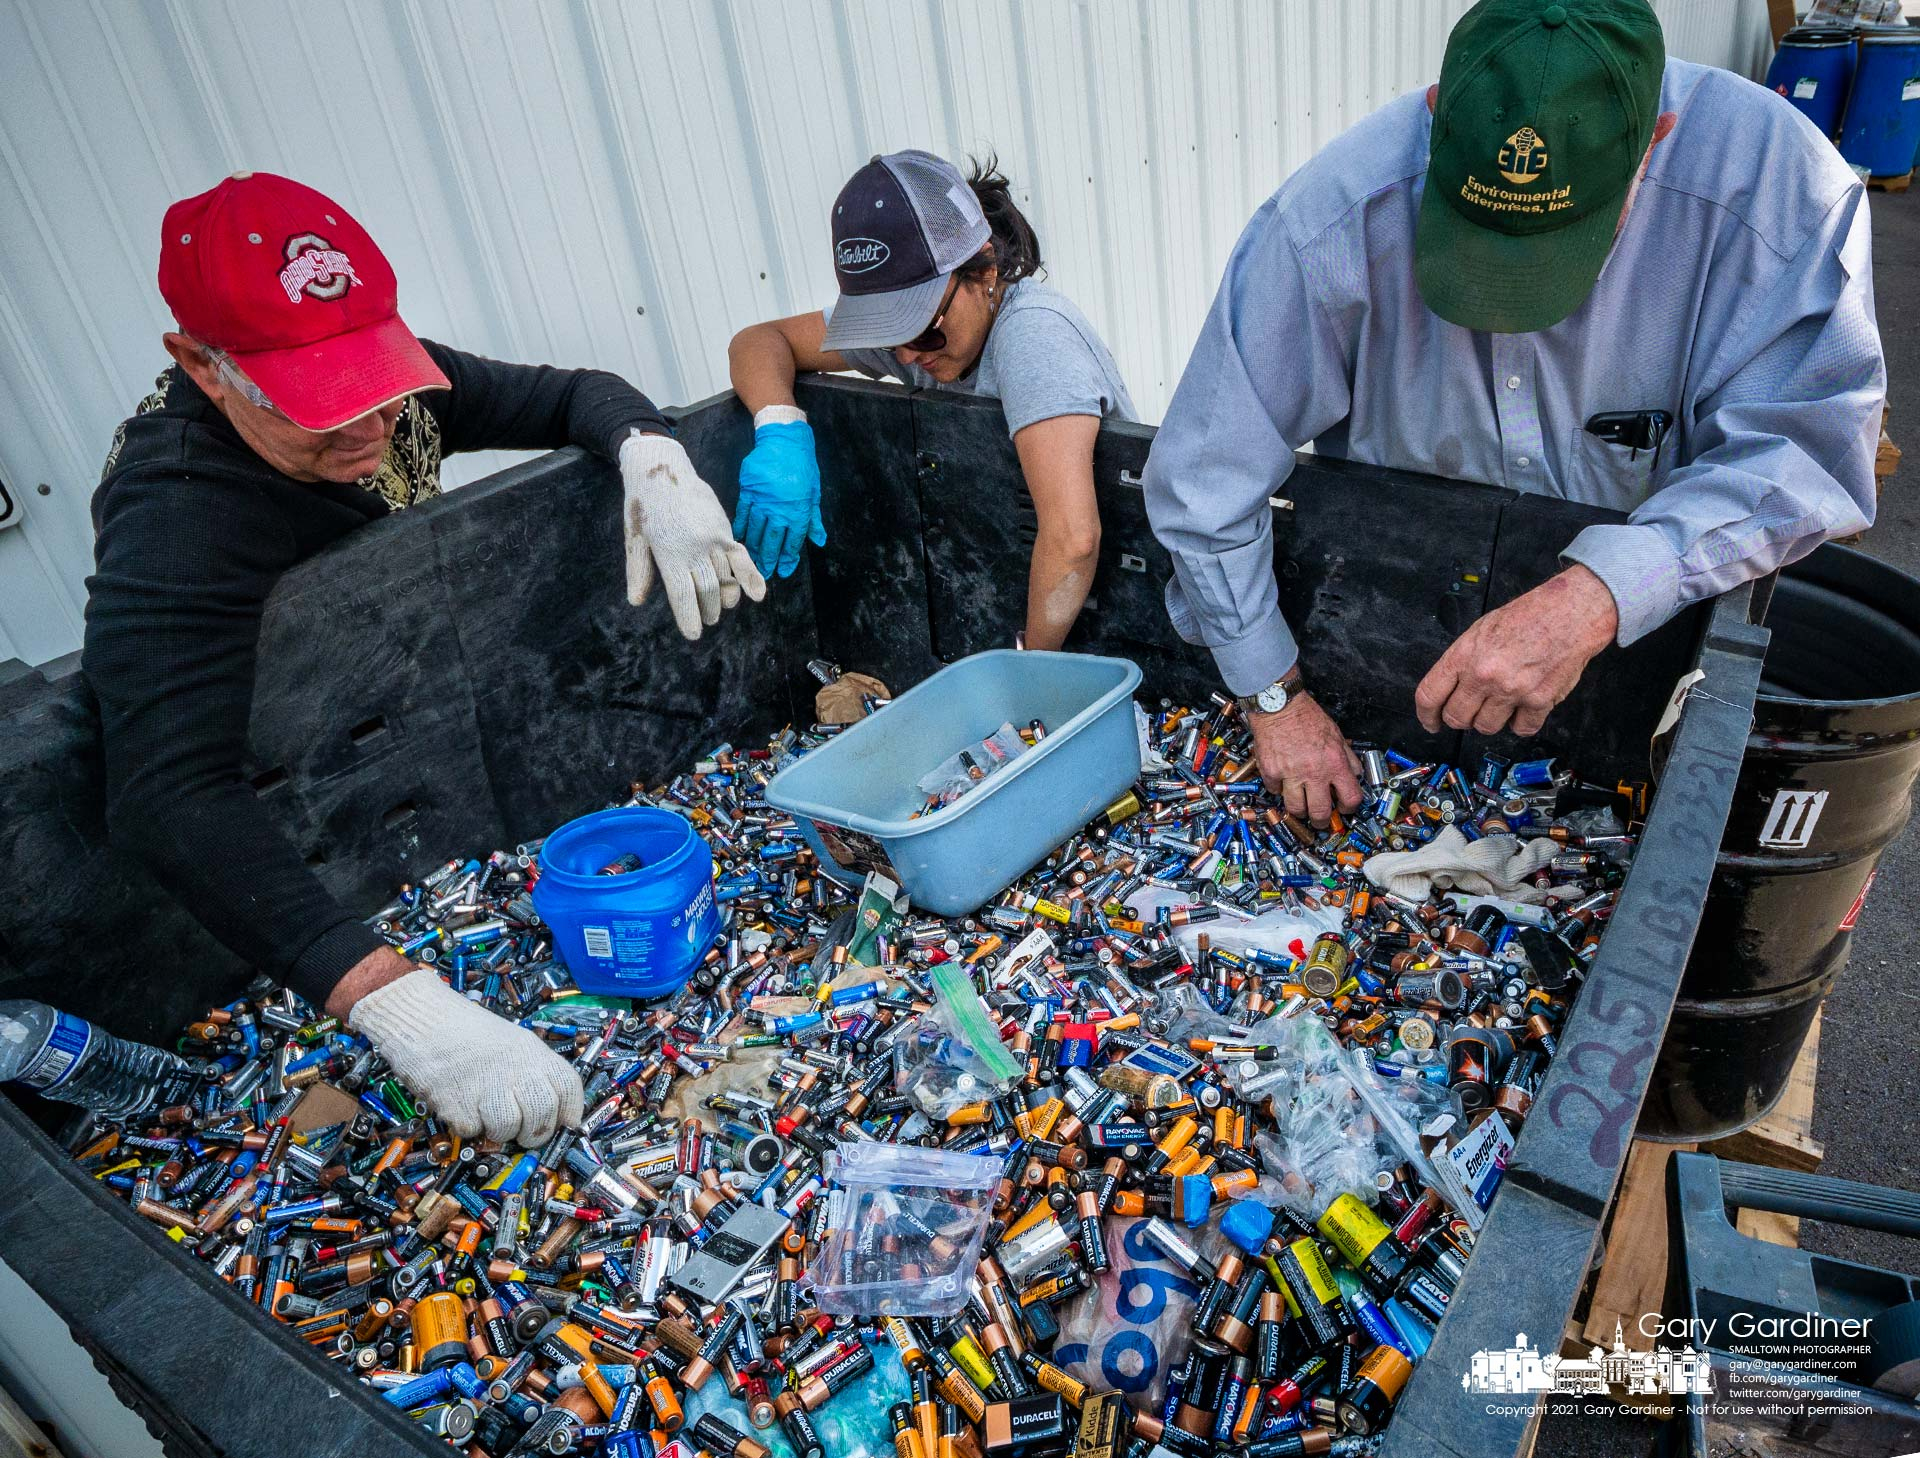 Sorters remove lithium batteries from a bin holding a portion of the batteries left for recycling during the Household Hazardous Waste Disposal drive-thru Saturday. My Final Photo for May 15, 2021.